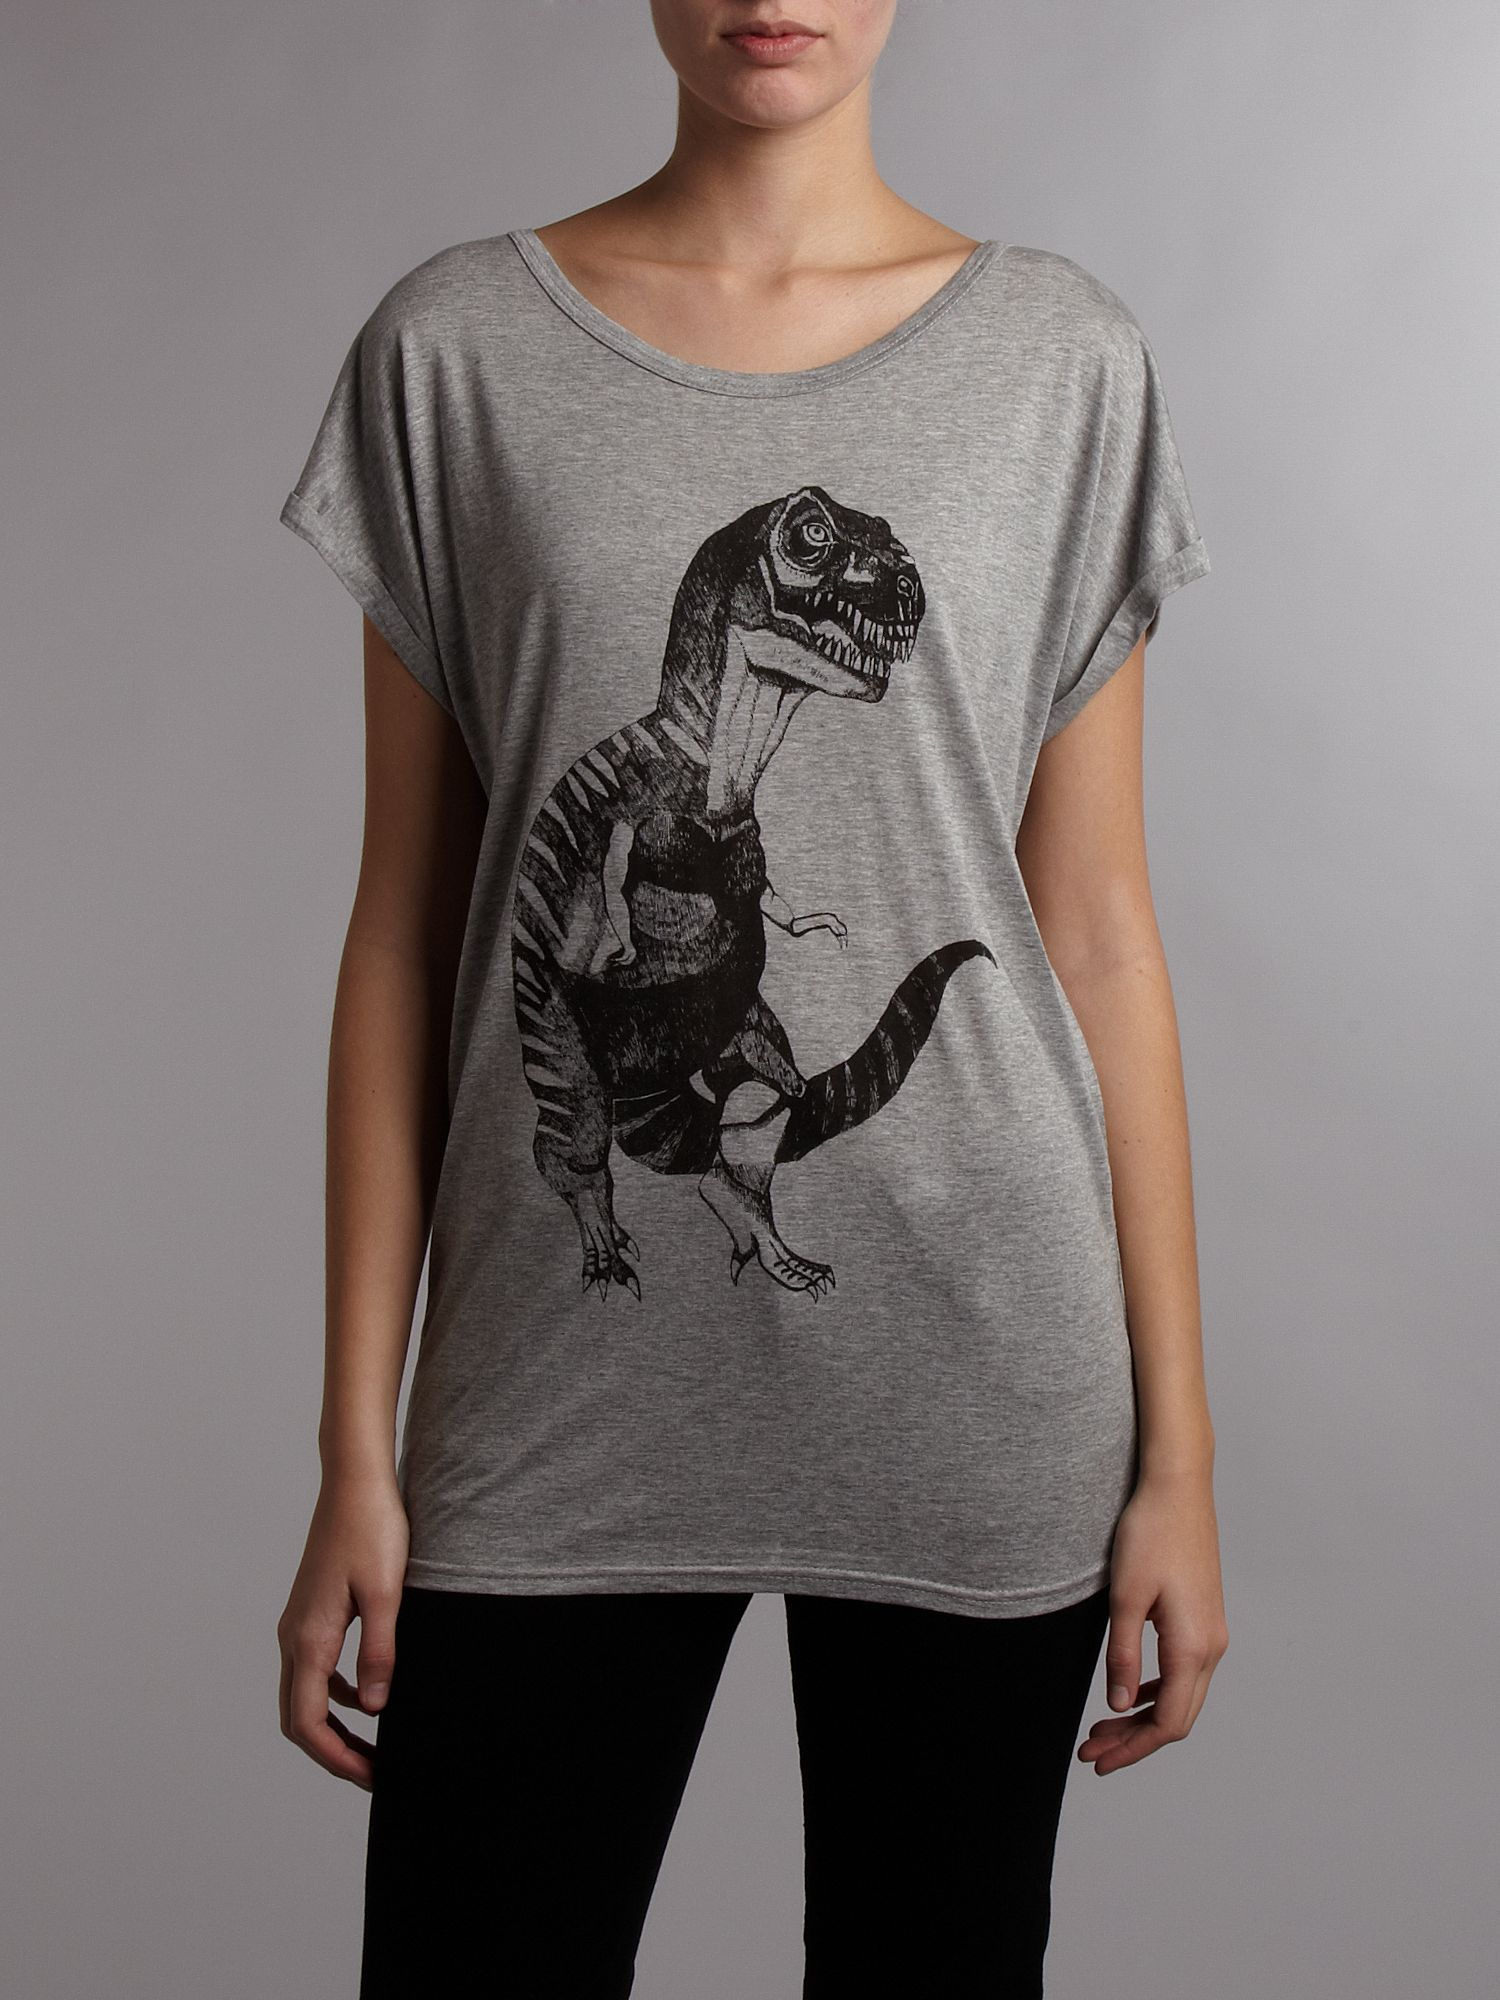 Brat and Suzie Short sleeve t-rex tee Grey product image